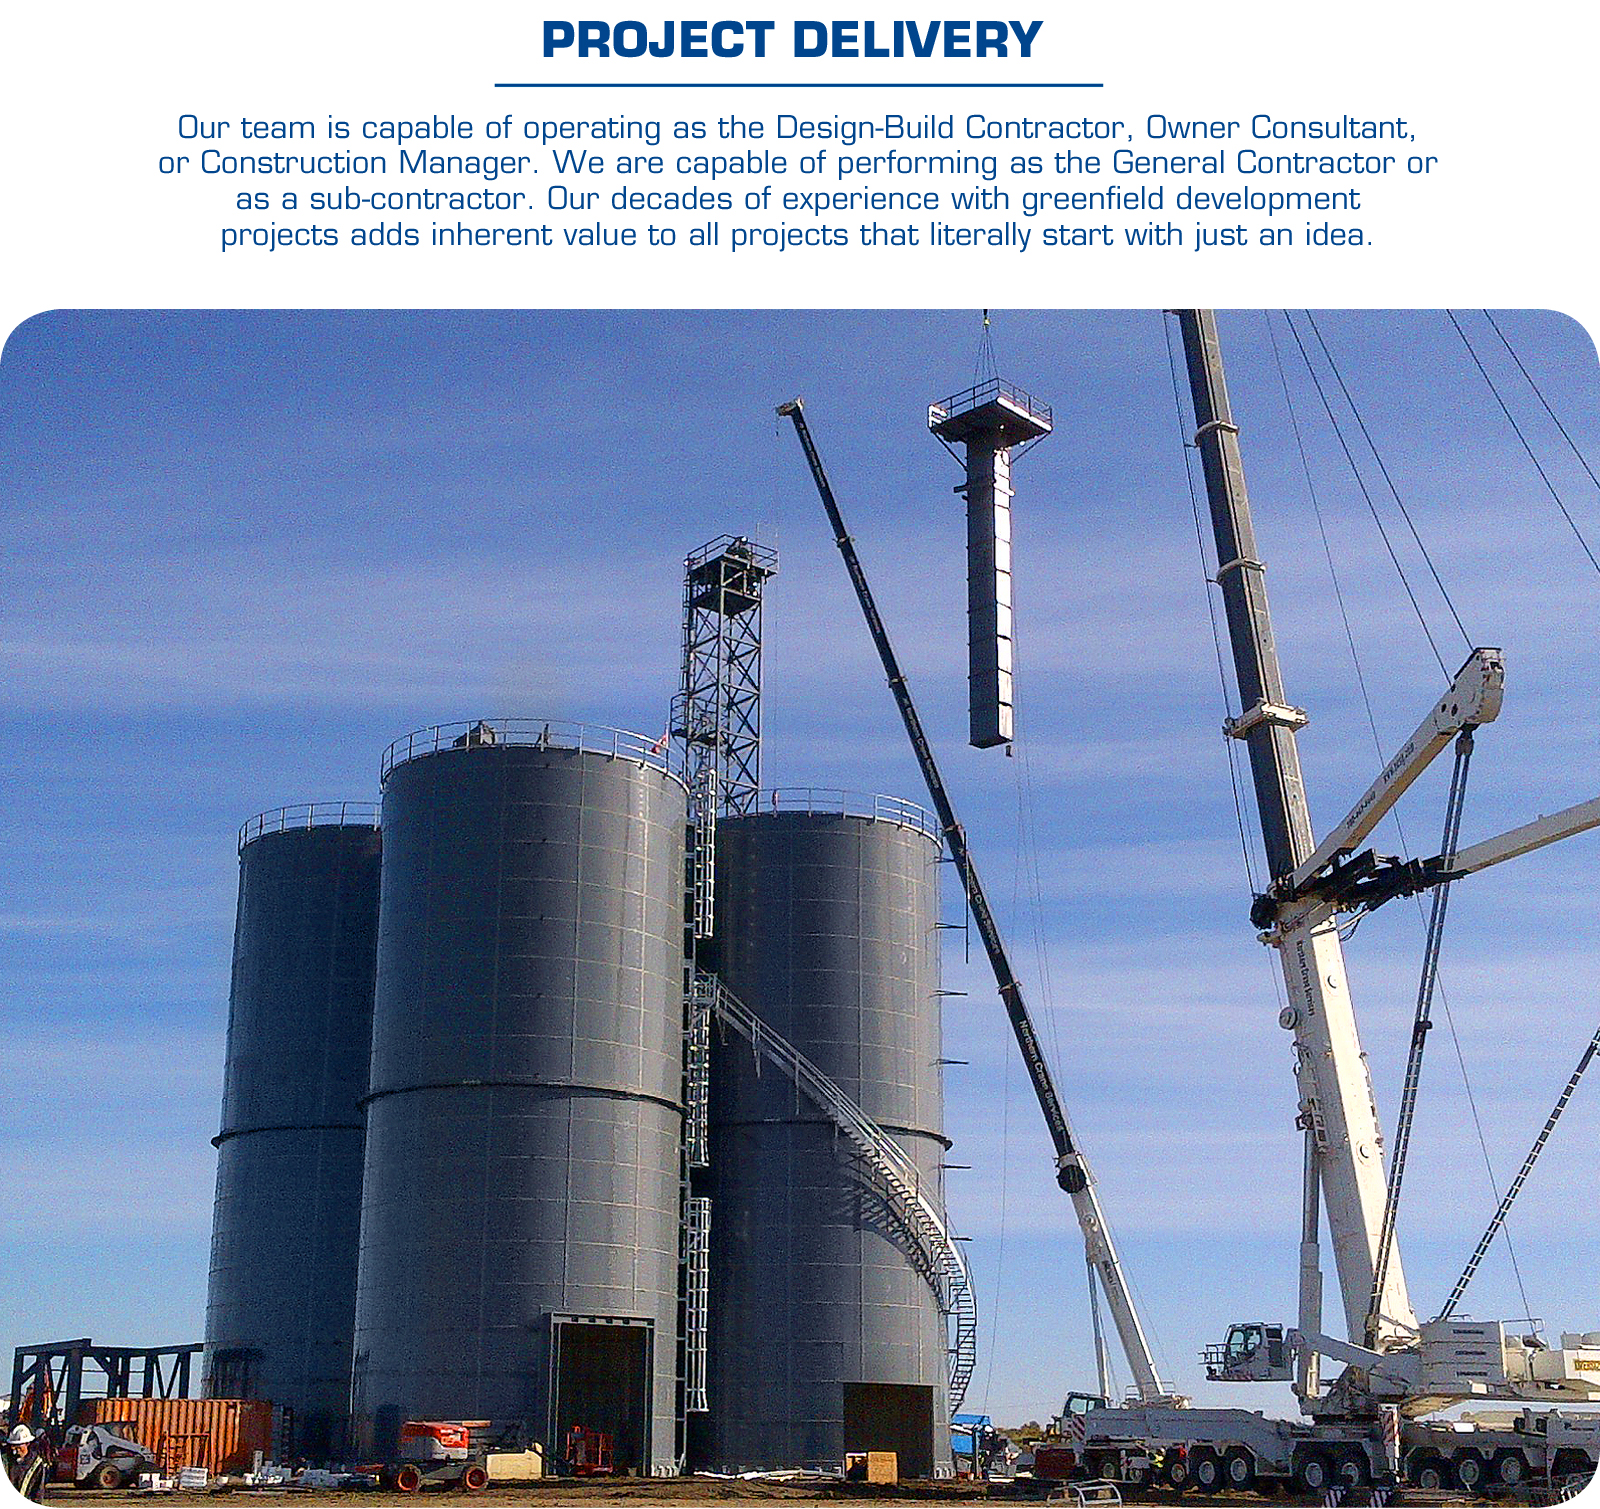 PROJECT DELIVERY